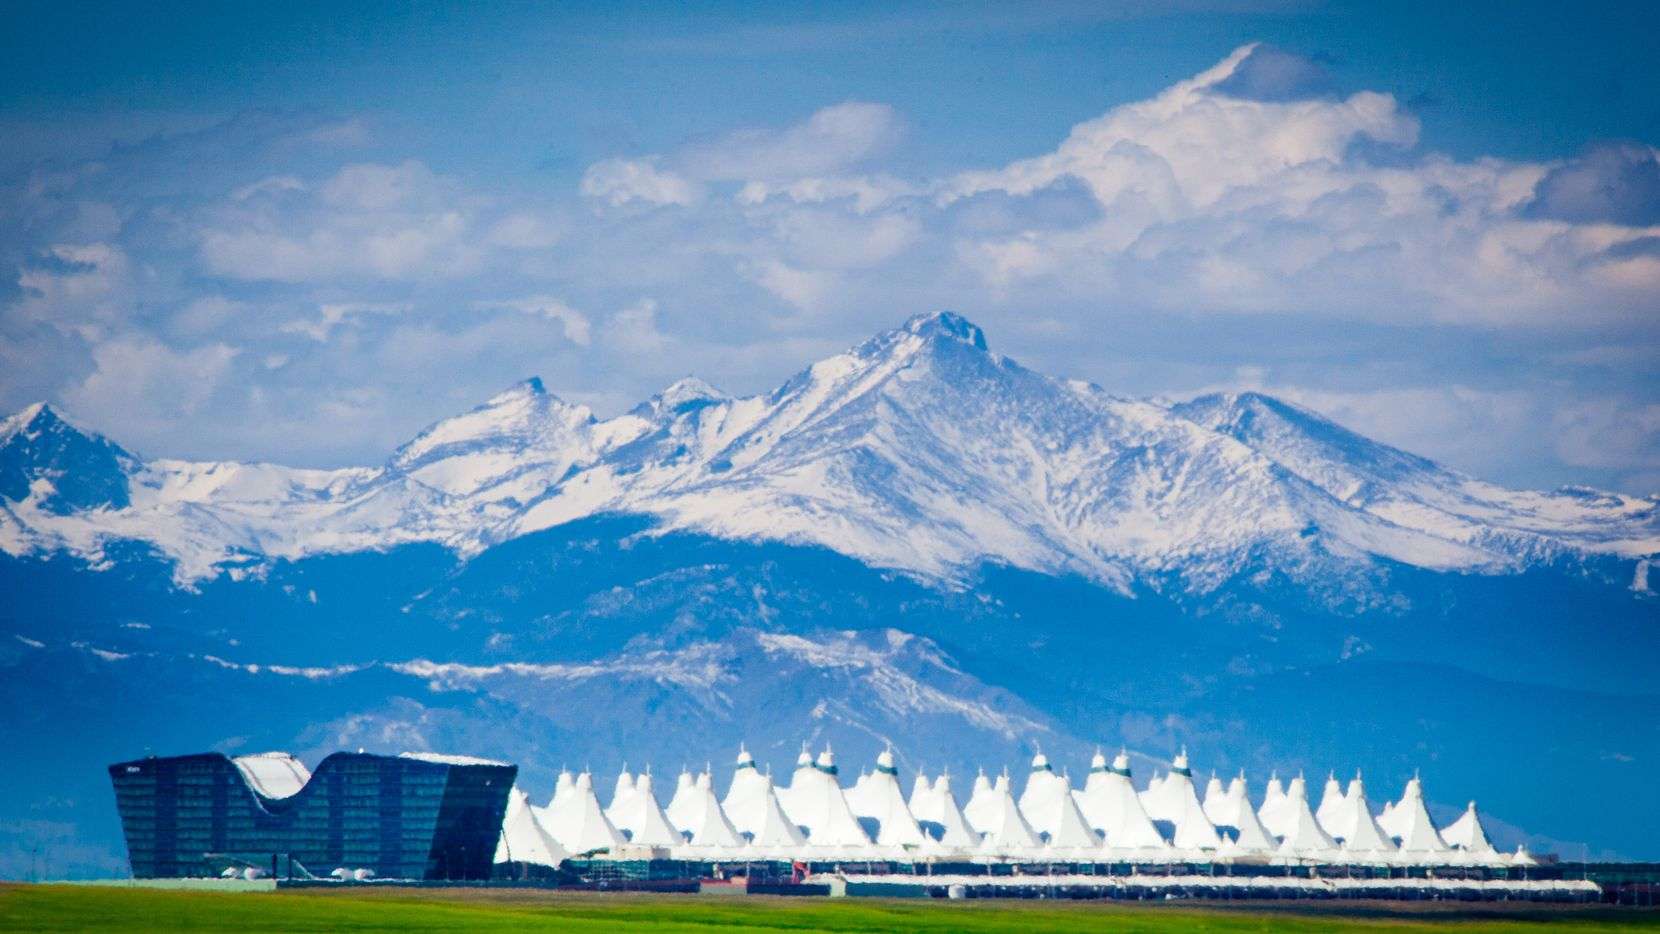 The Jeppesen Terminal at Denver International Airport with the Rocky Mountains behind it.